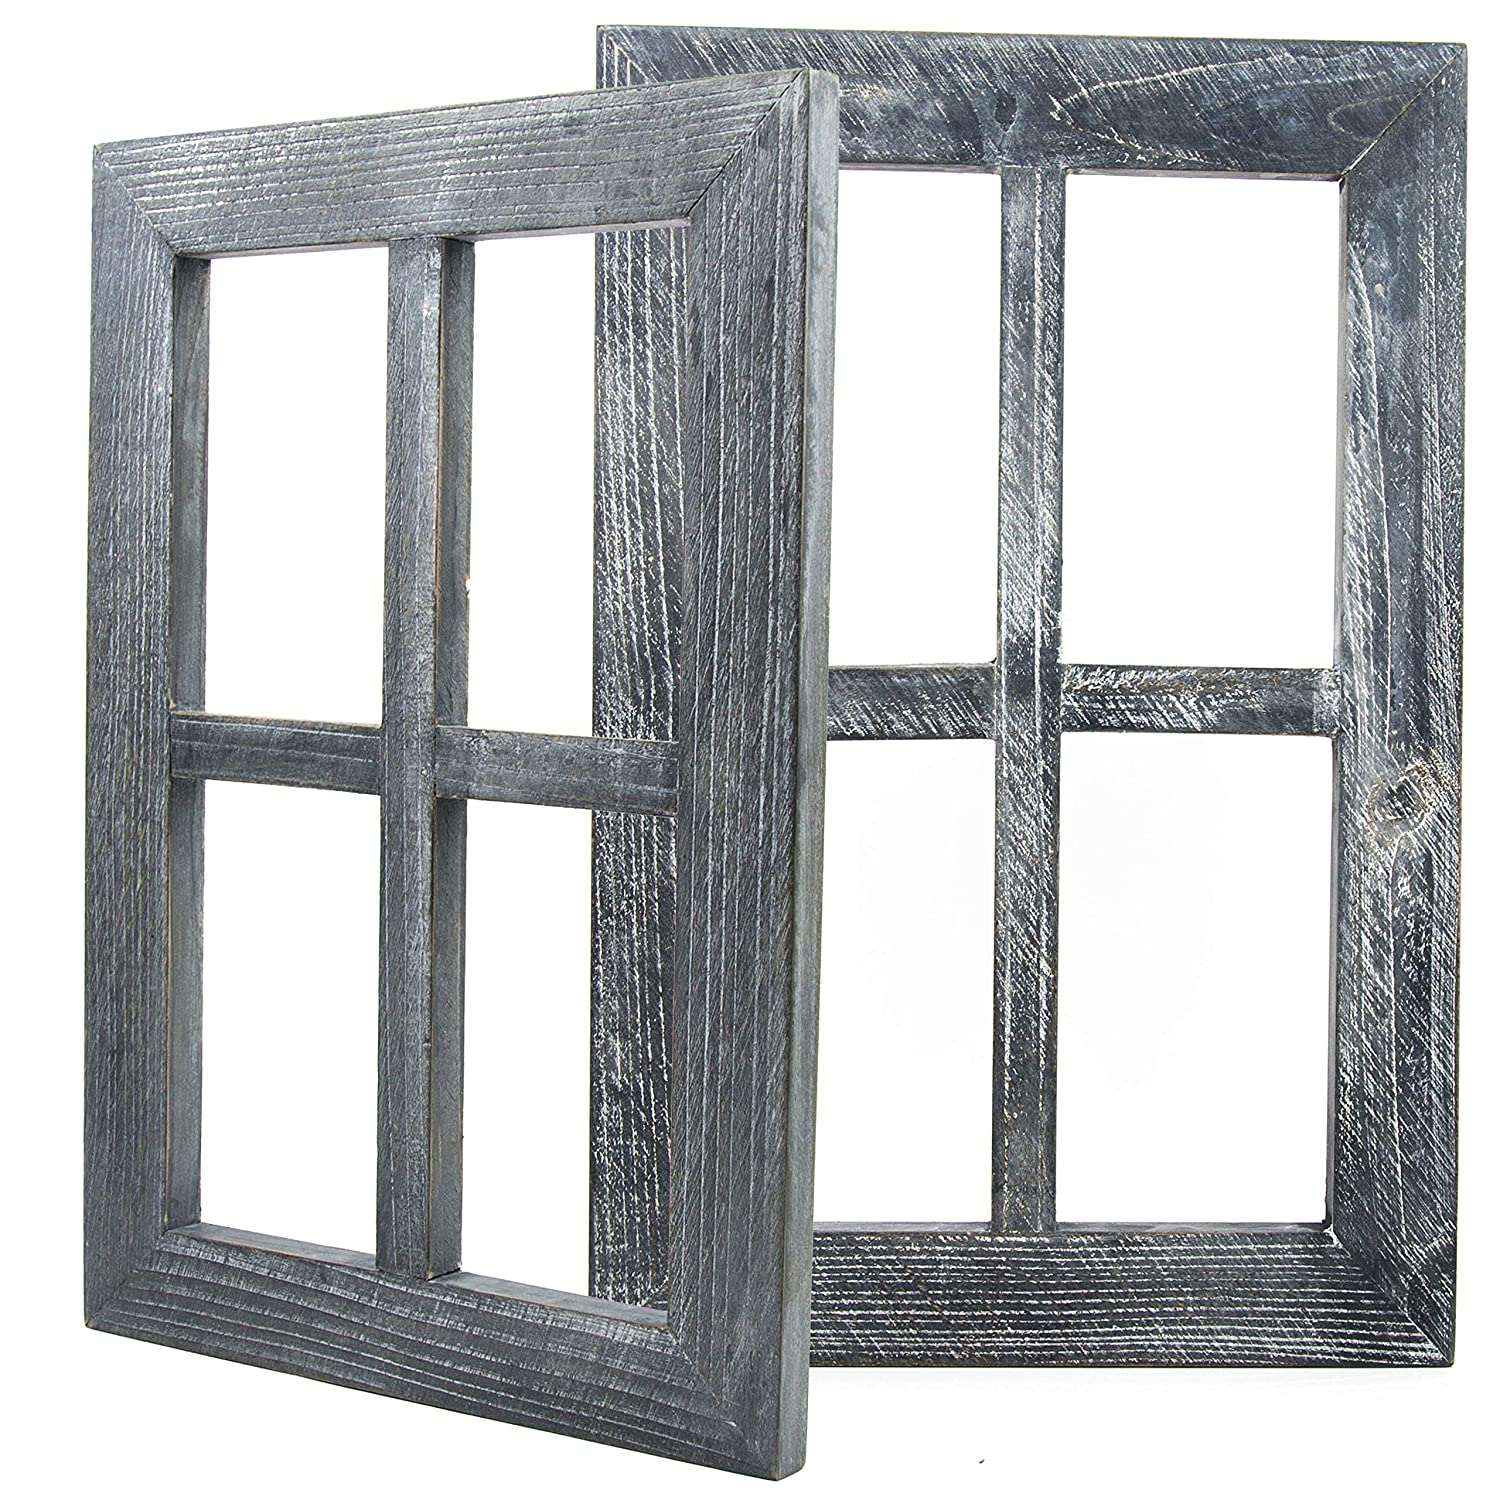 "Daisy's House Distressed Window Frame Wall Decor – Set of 2 Rustic Window Panes with Hanging Hardware for Bedroom Living Room Bathroom Barnwood Home Decor (15.75"" x 11"" x 1"" Each)"